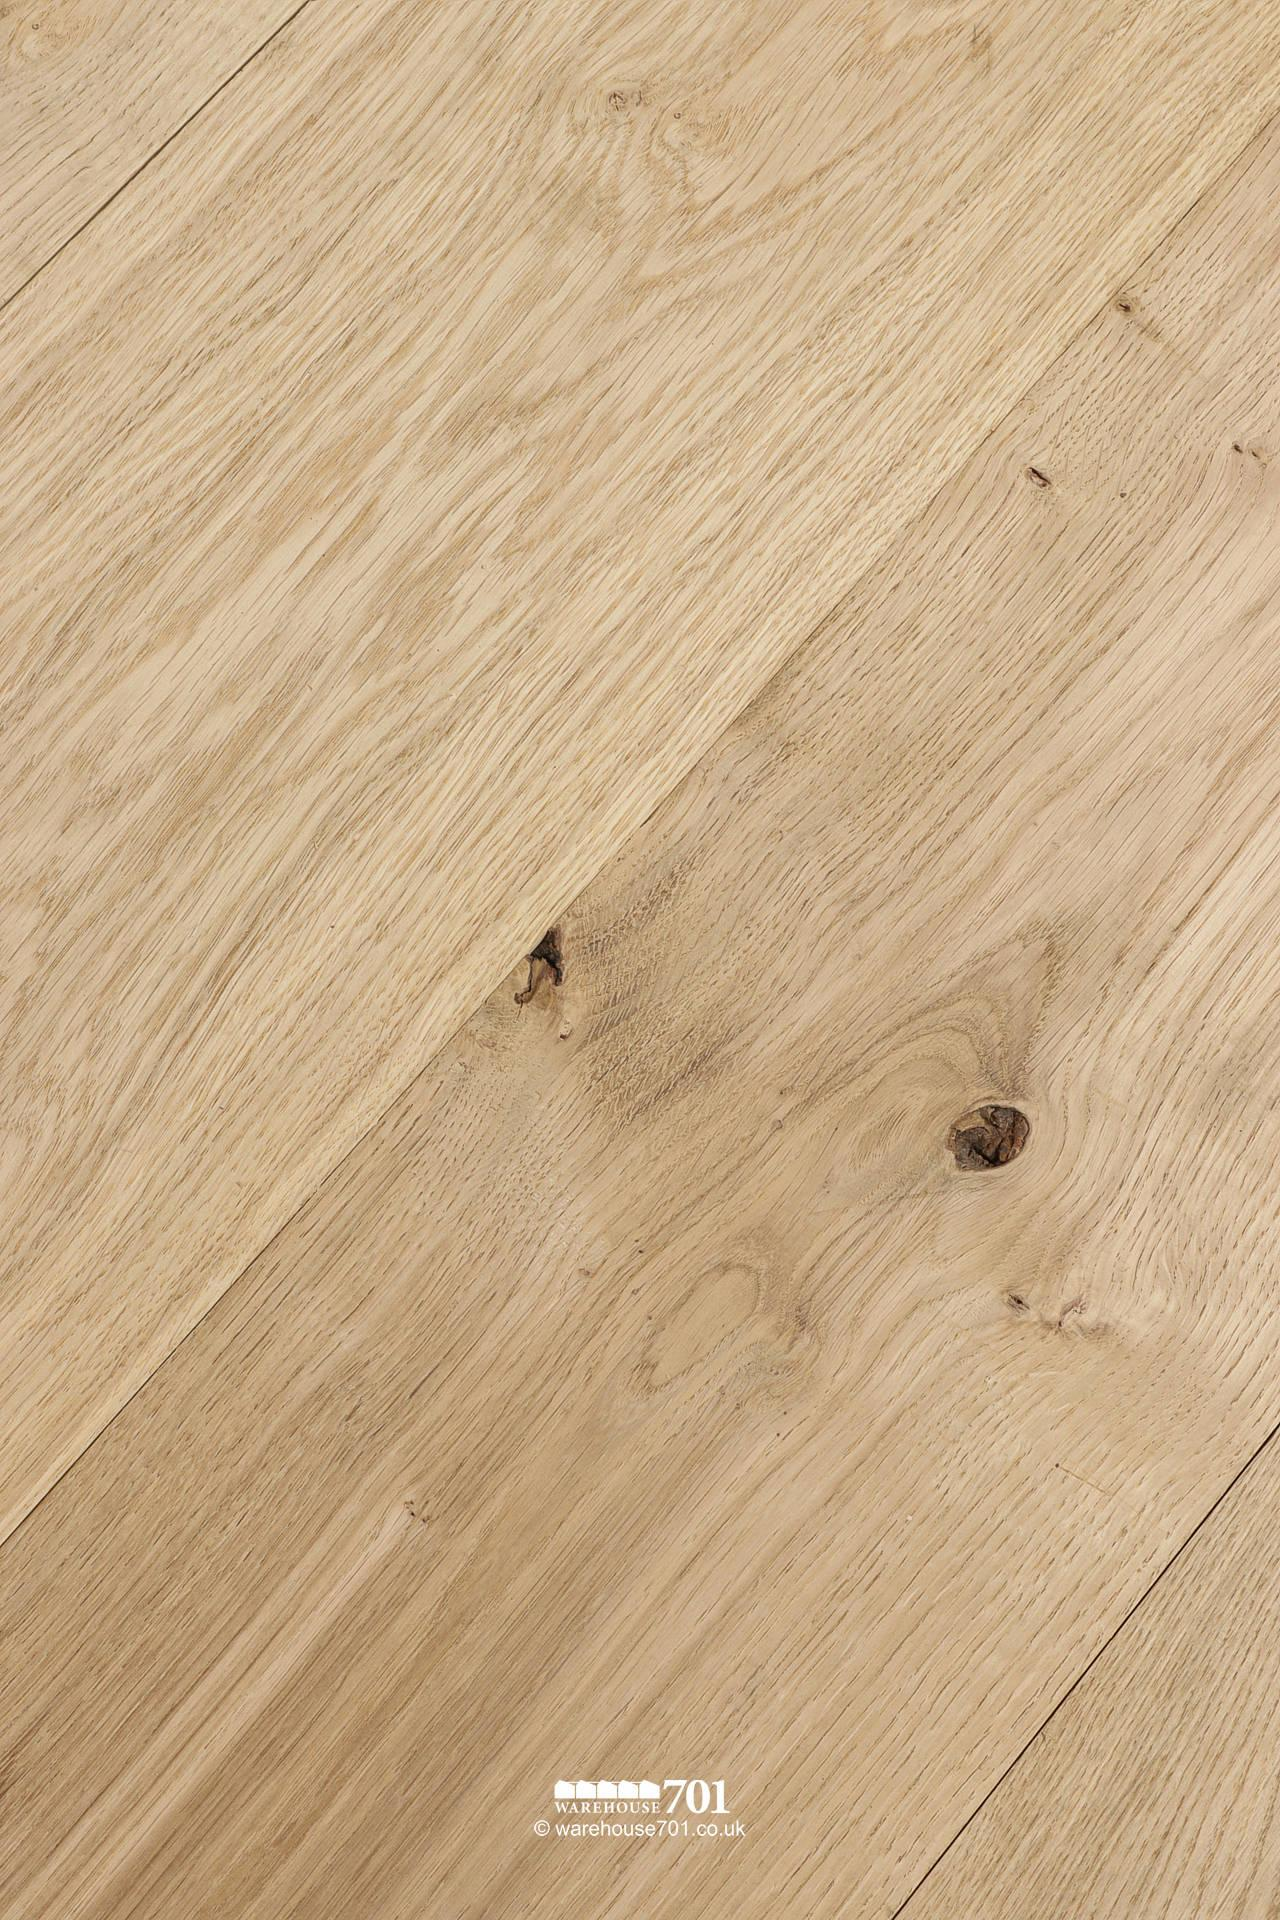 New Natural Oak Solid Wood Tongue and Groove Plank Flooring #1